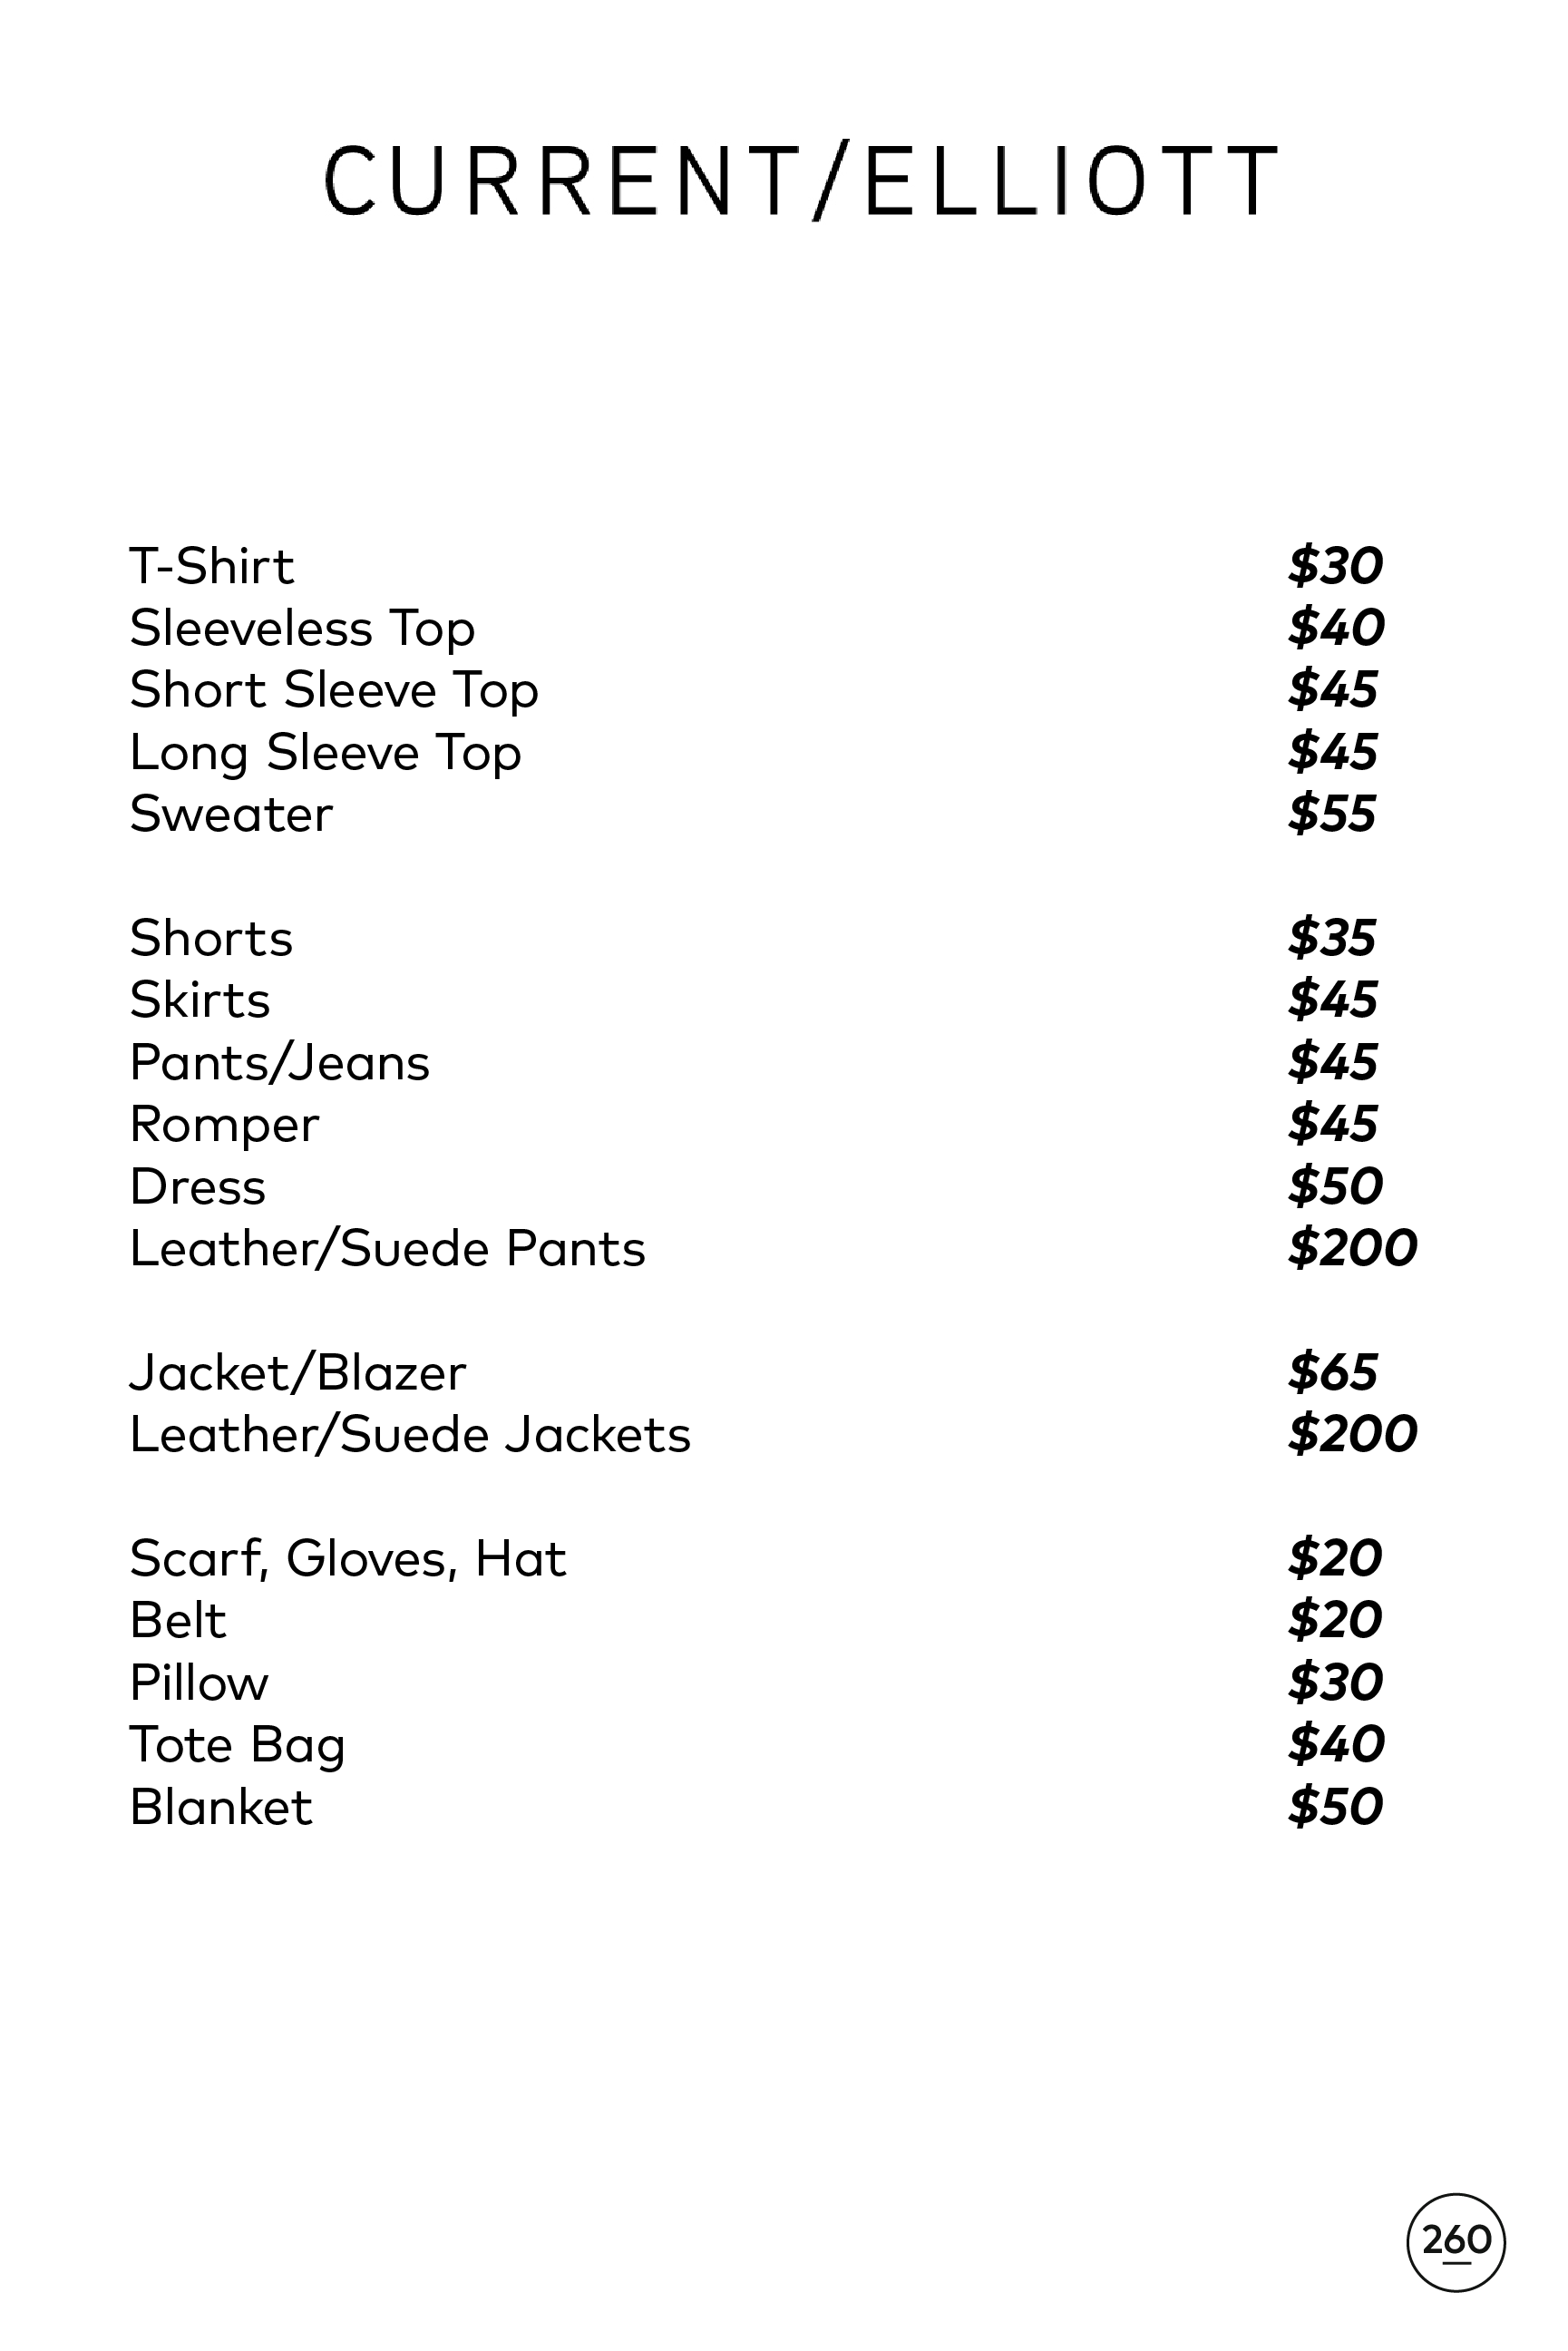 EquipmentJoieCurrentElliot_Pricing-02.png